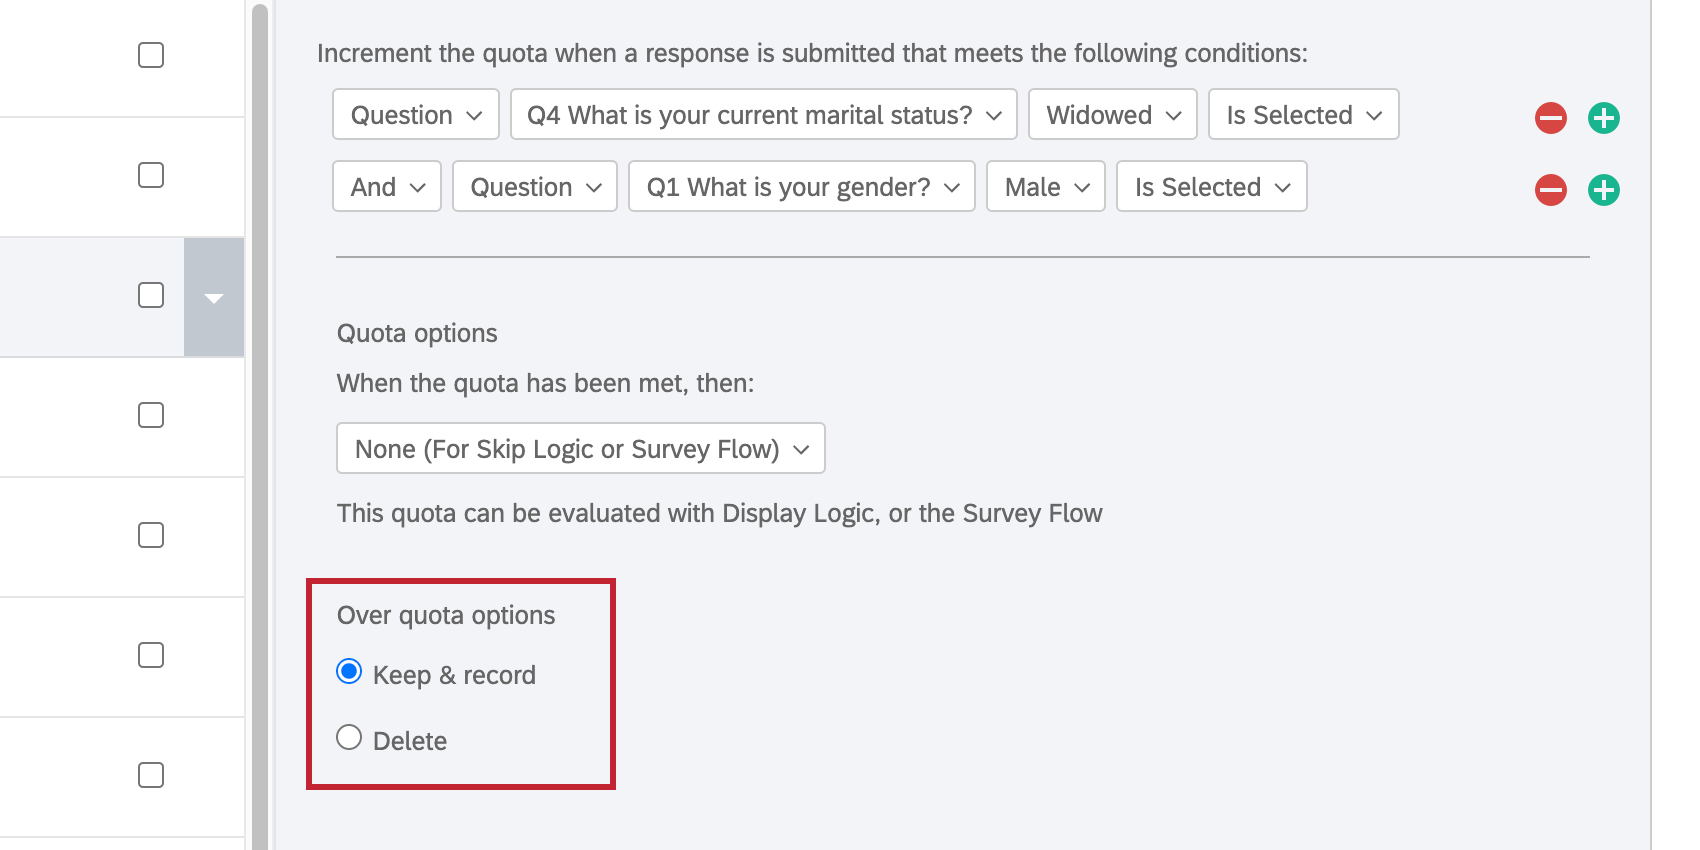 """A quota with """"None: skip logic or survey flow"""" selected has an extra set of options underneath it that say """"over quota options"""". The options are keep & record or delete"""